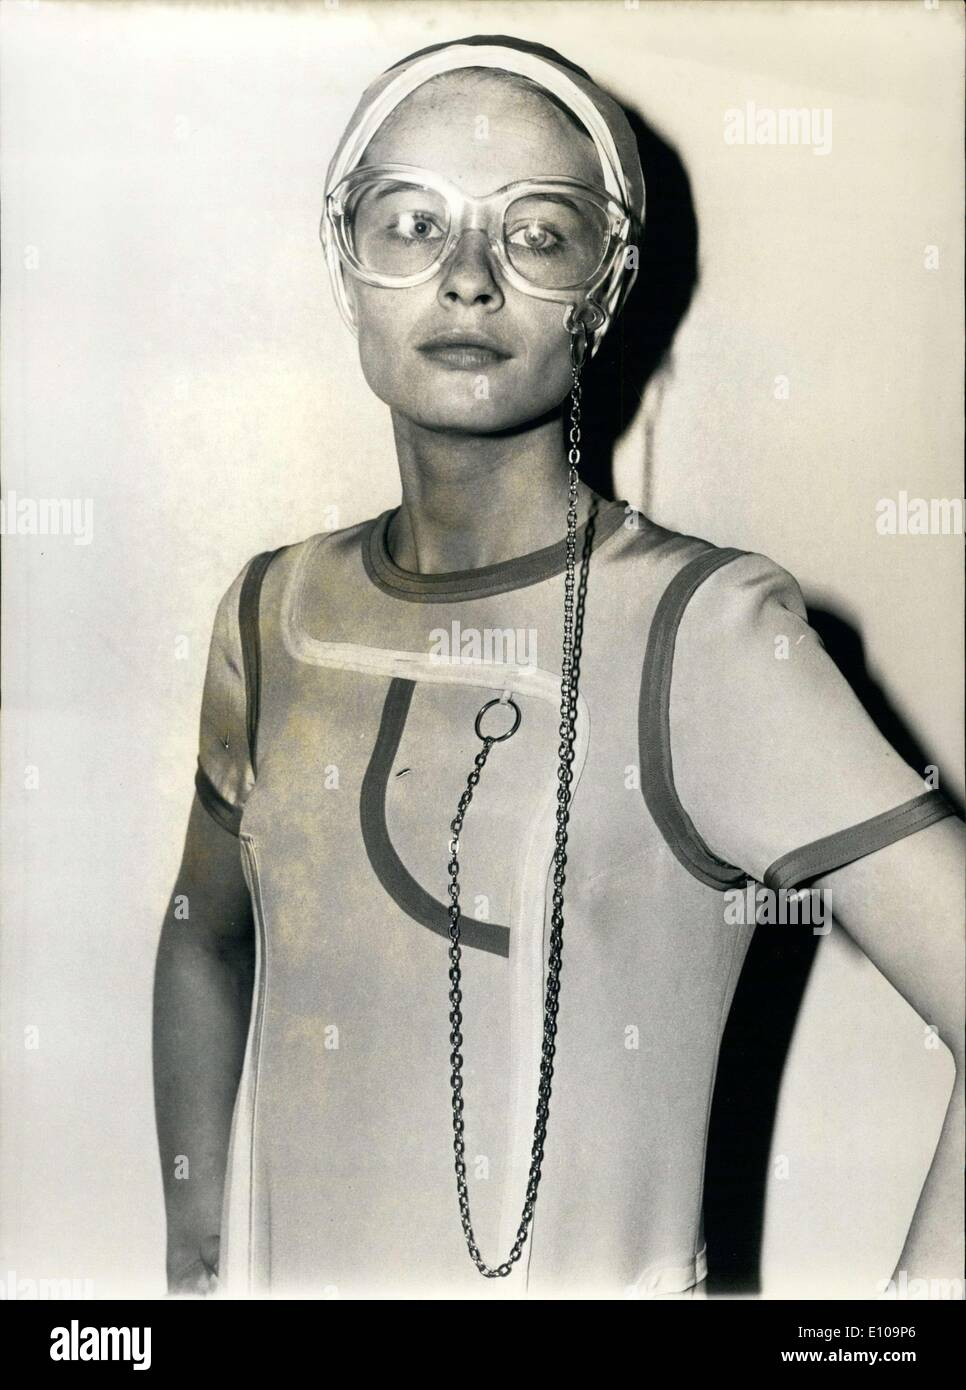 Mar. 23, 1970 - A new fashion accessory for your glasses by Louis Feraud - Stock Image